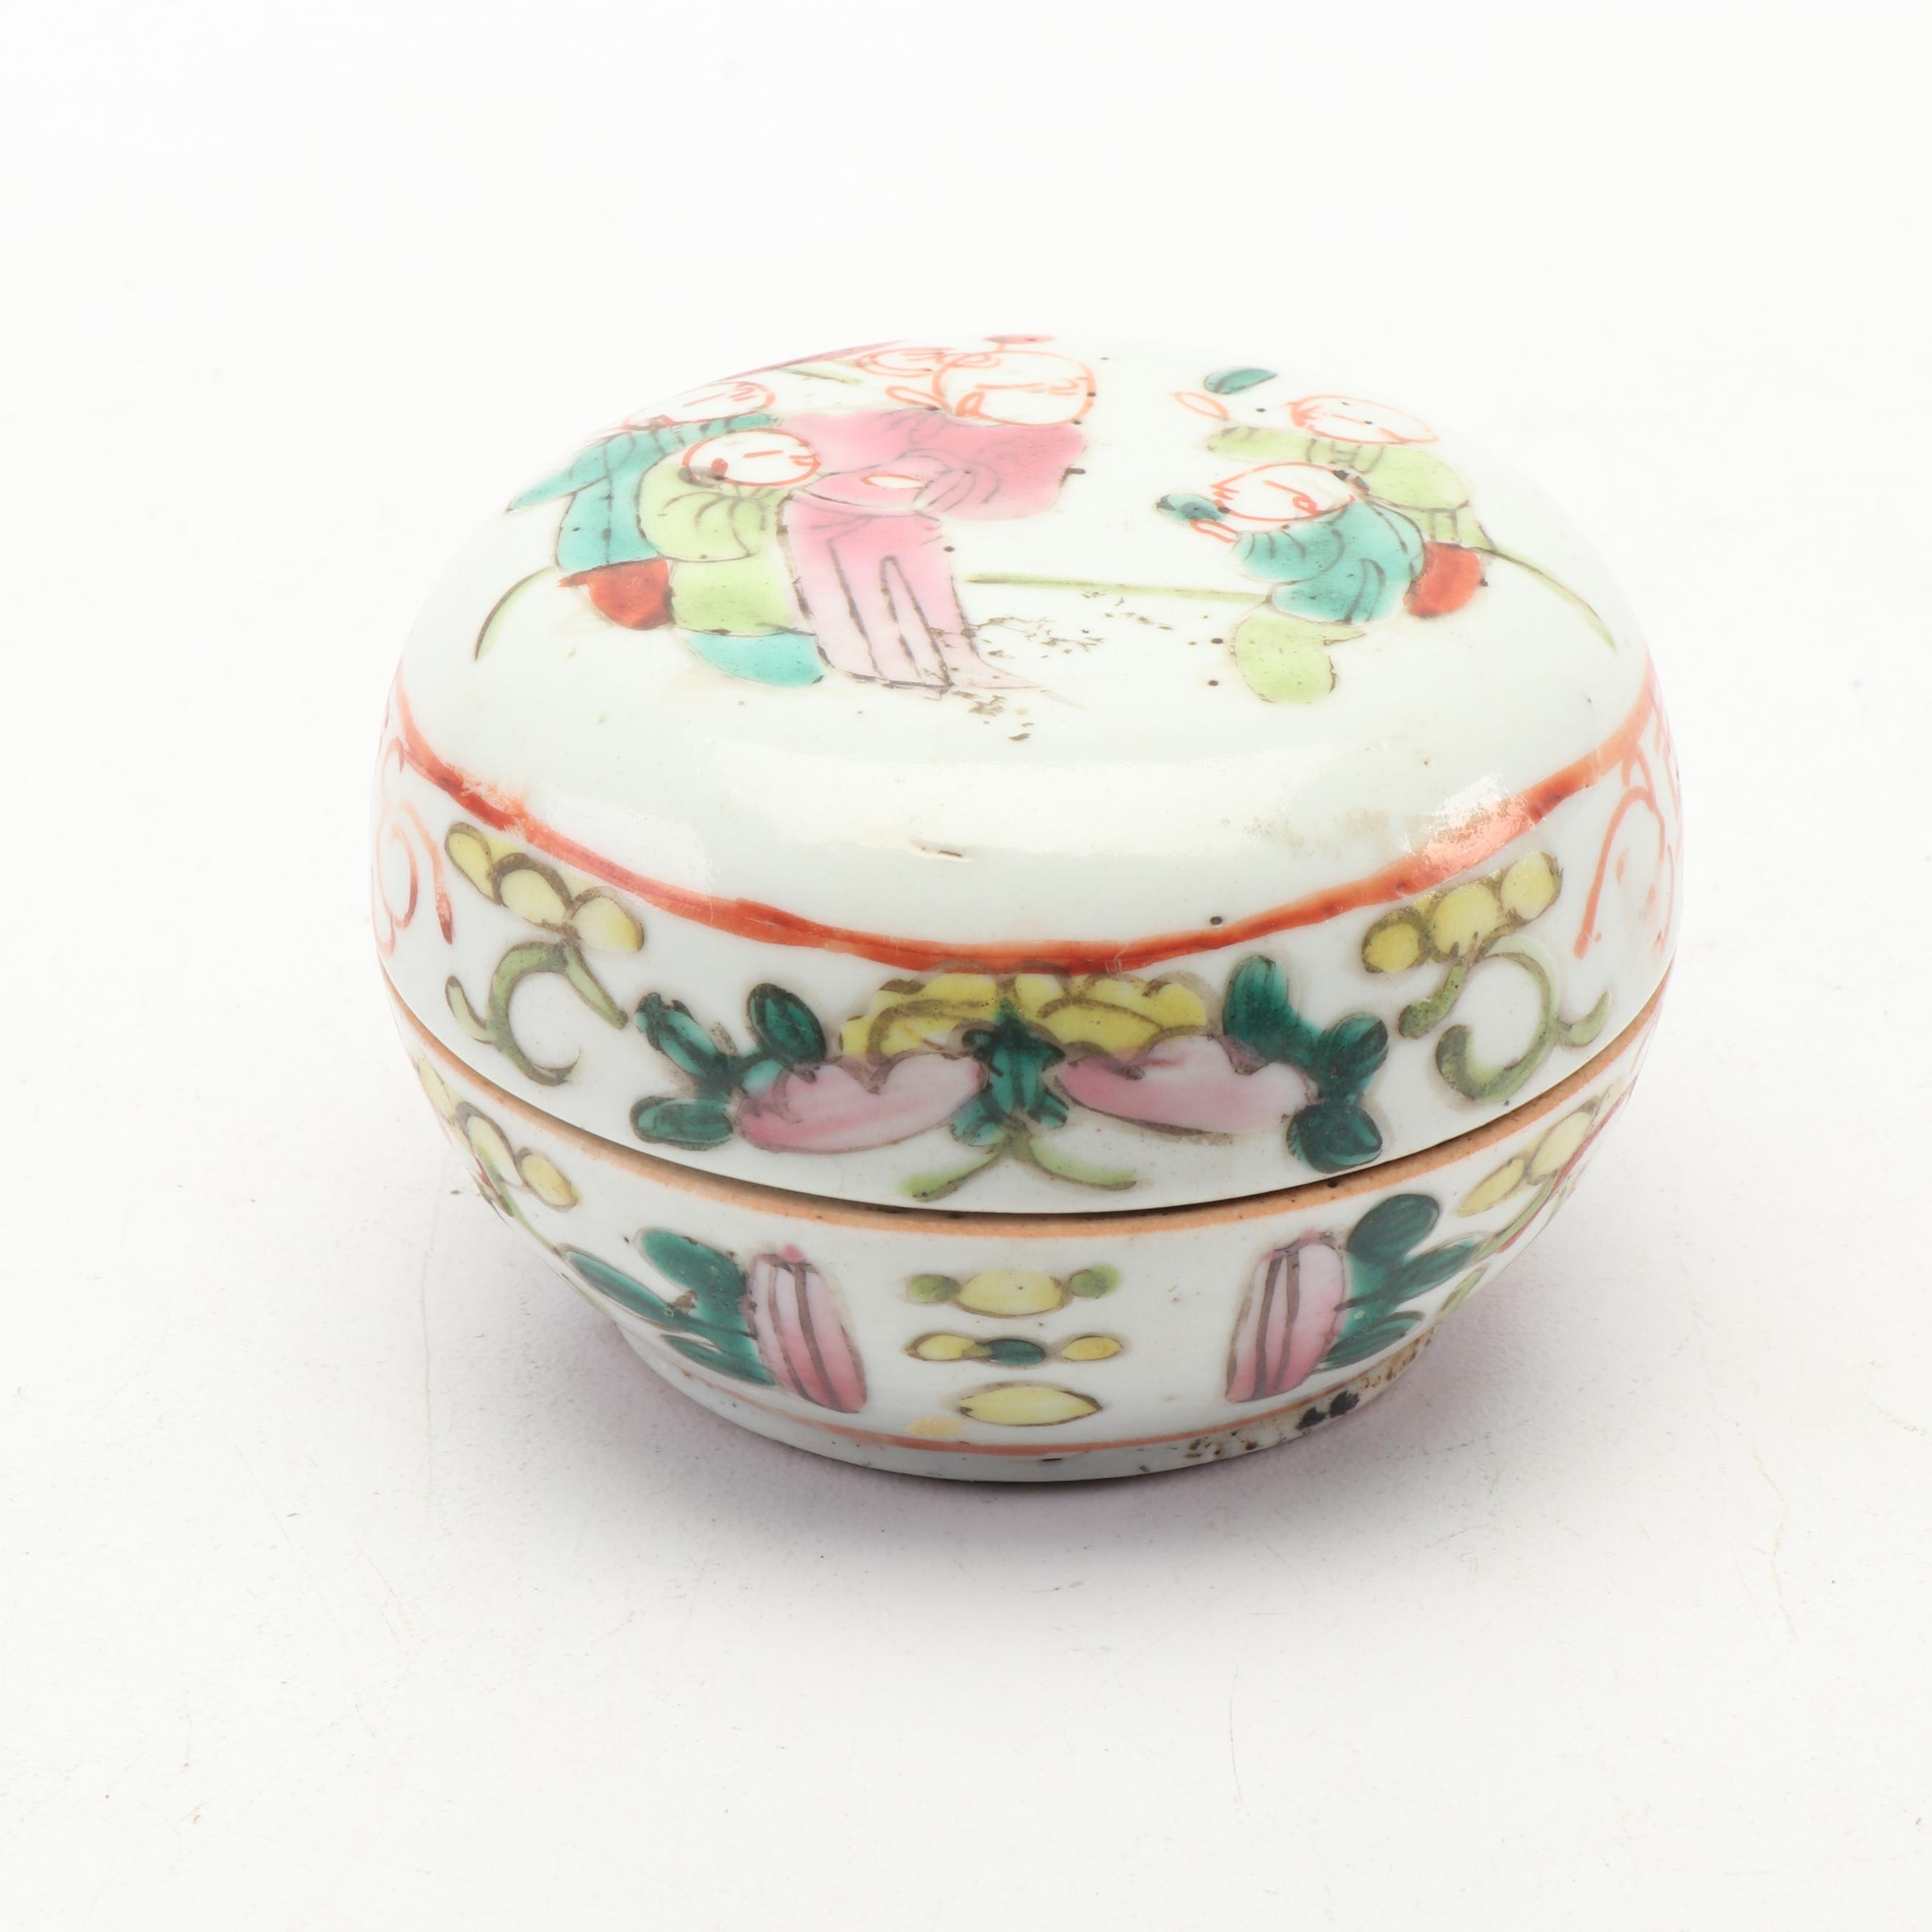 Chinese Hand-Painted Porcelain Trinket Box, Qing Dynasty